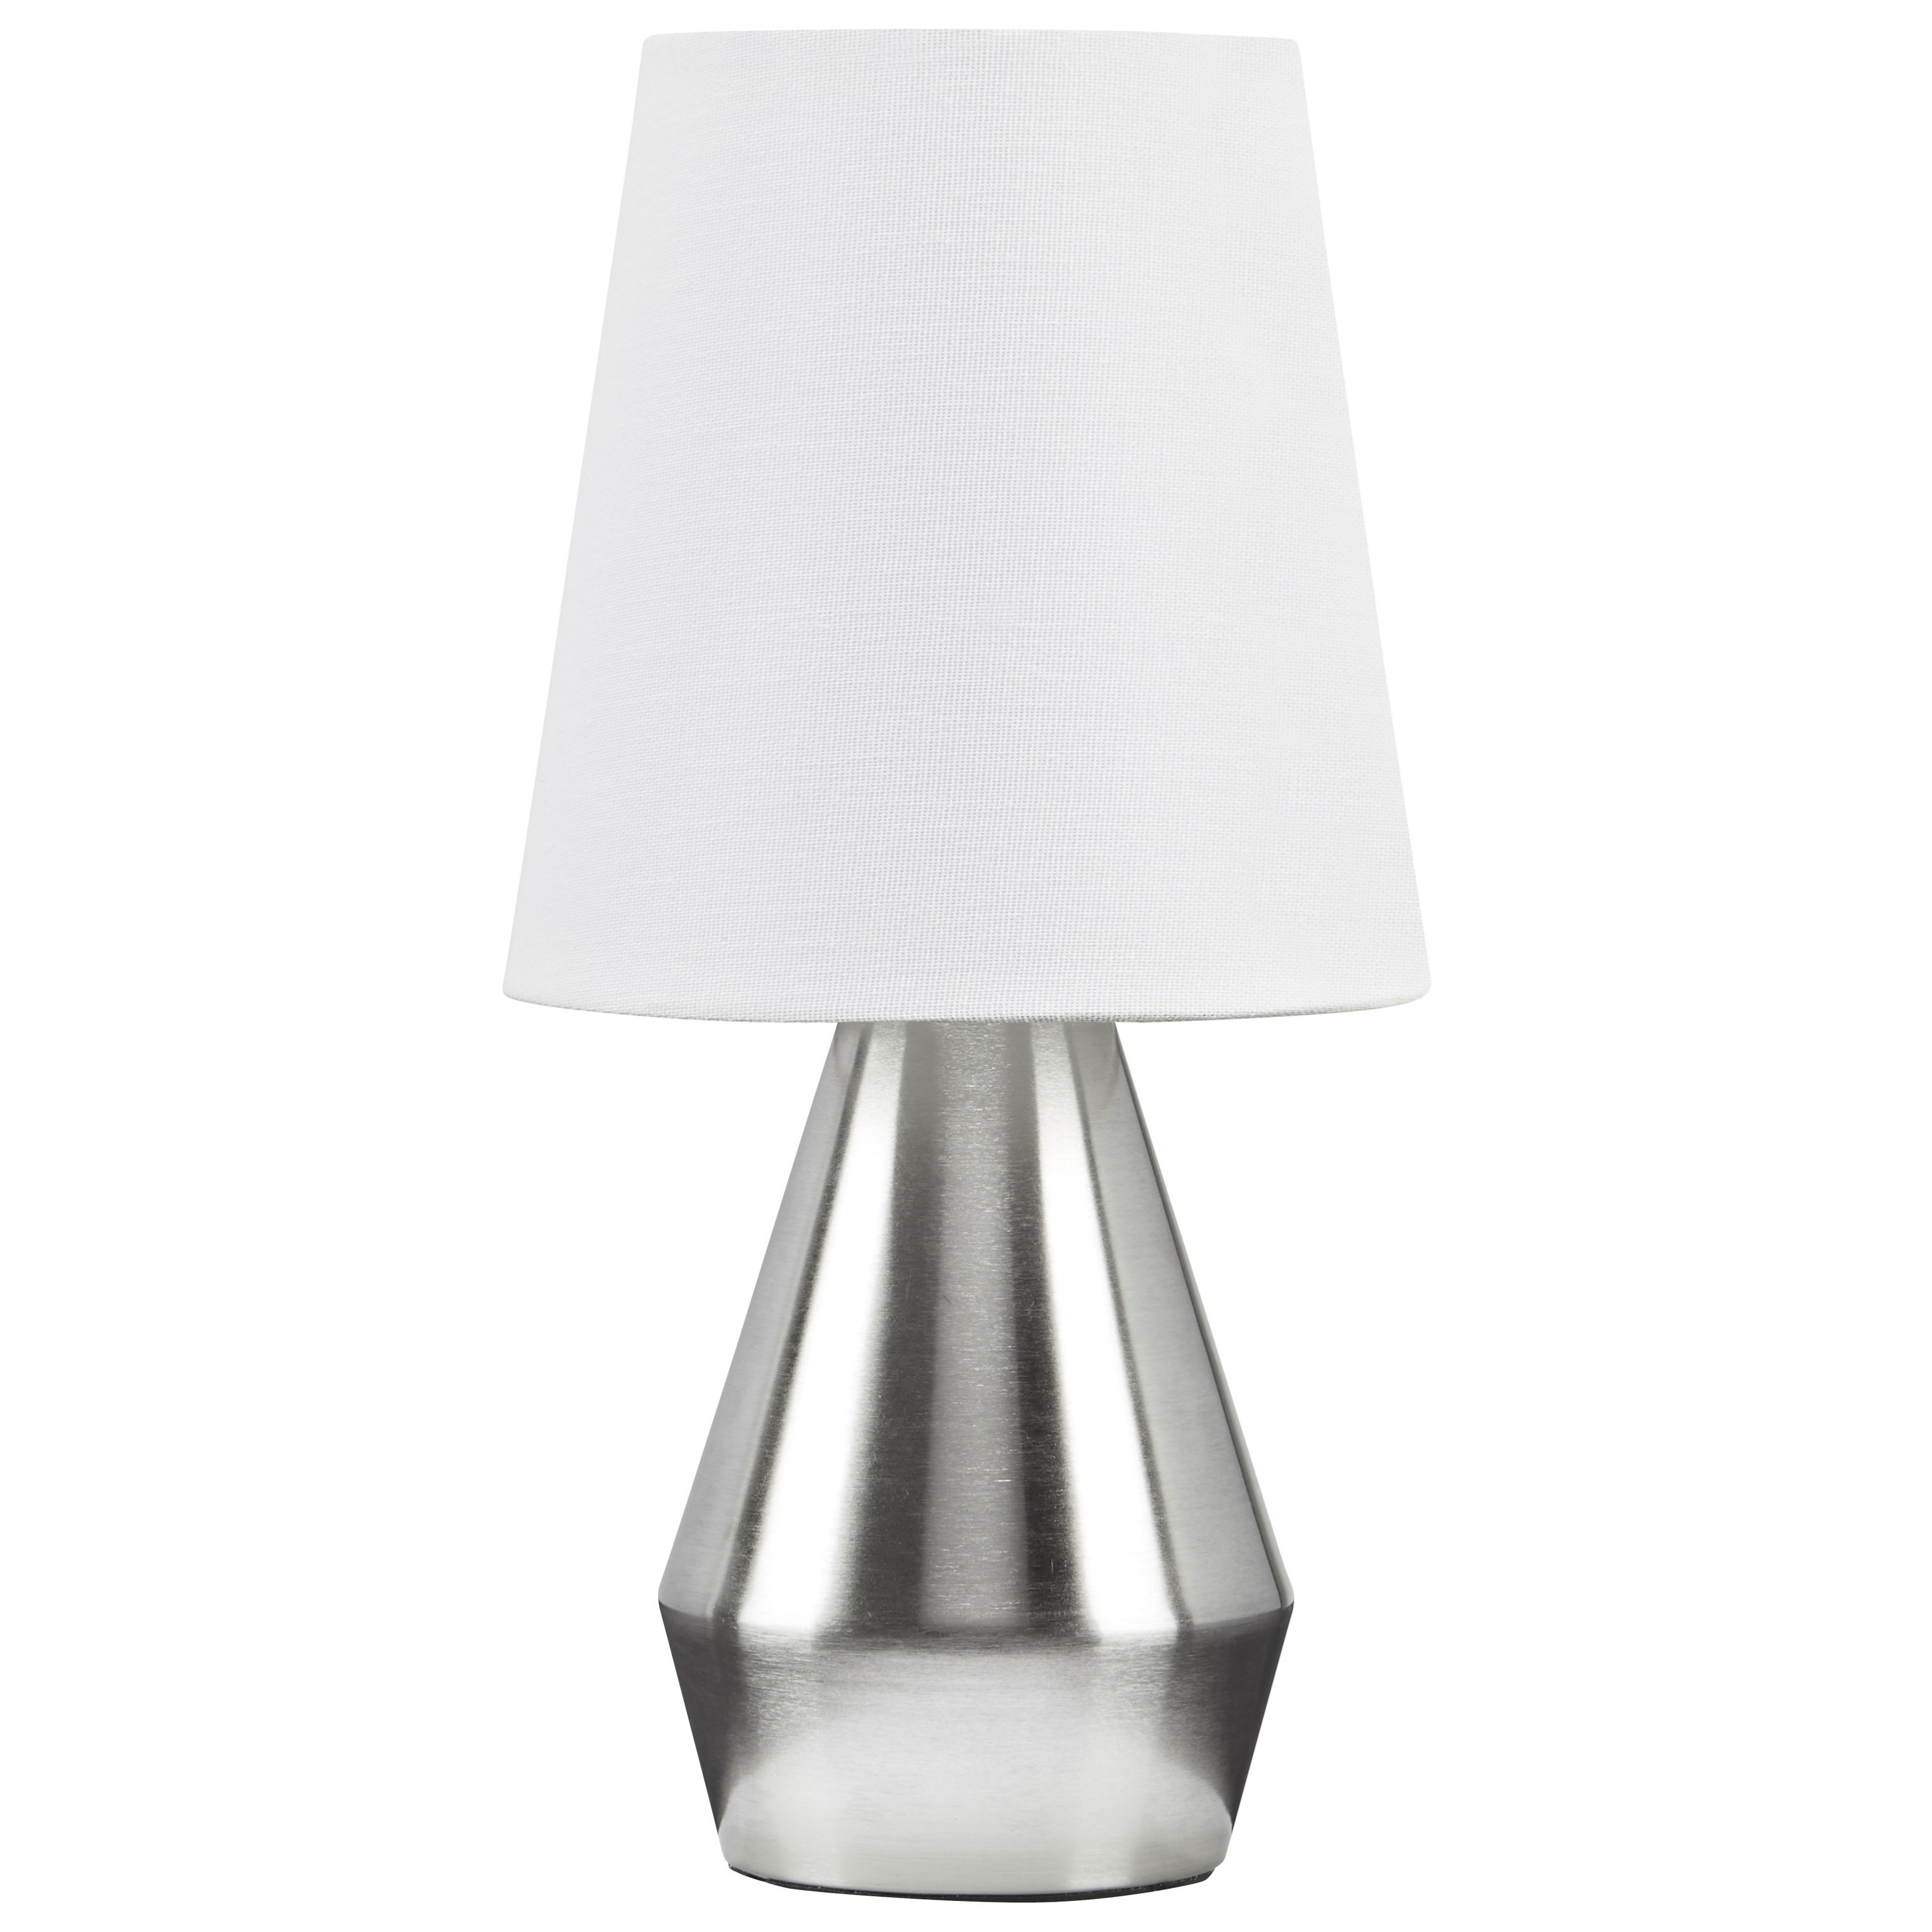 Lamps - Contemporary Lanry Silver Finish Metal Table Lamp by Ashley (Signature Design) at Johnny Janosik